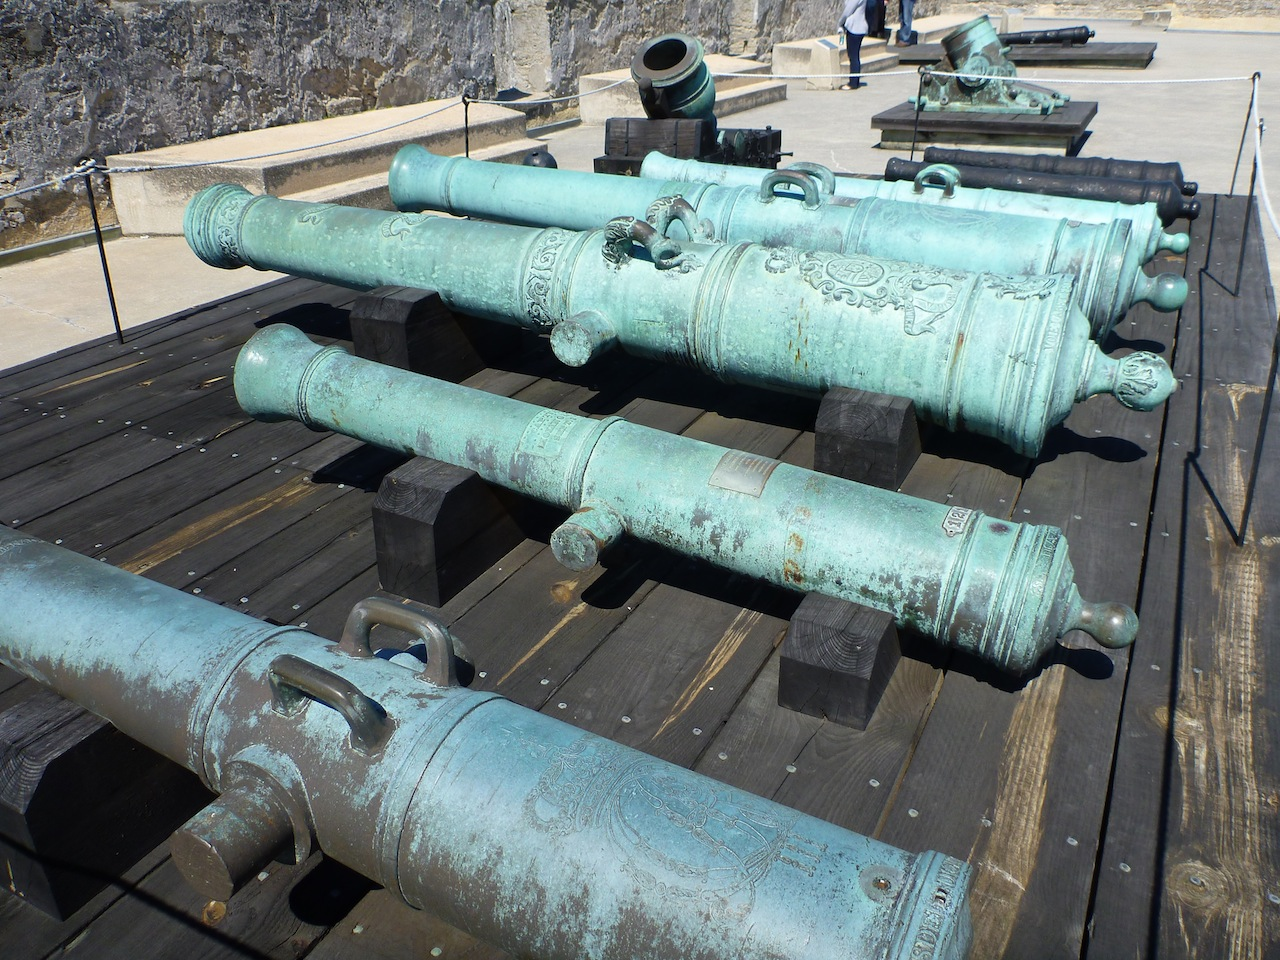 A Display Of Original 1600's Cannons That Were Used In The Castillo de San Marcos